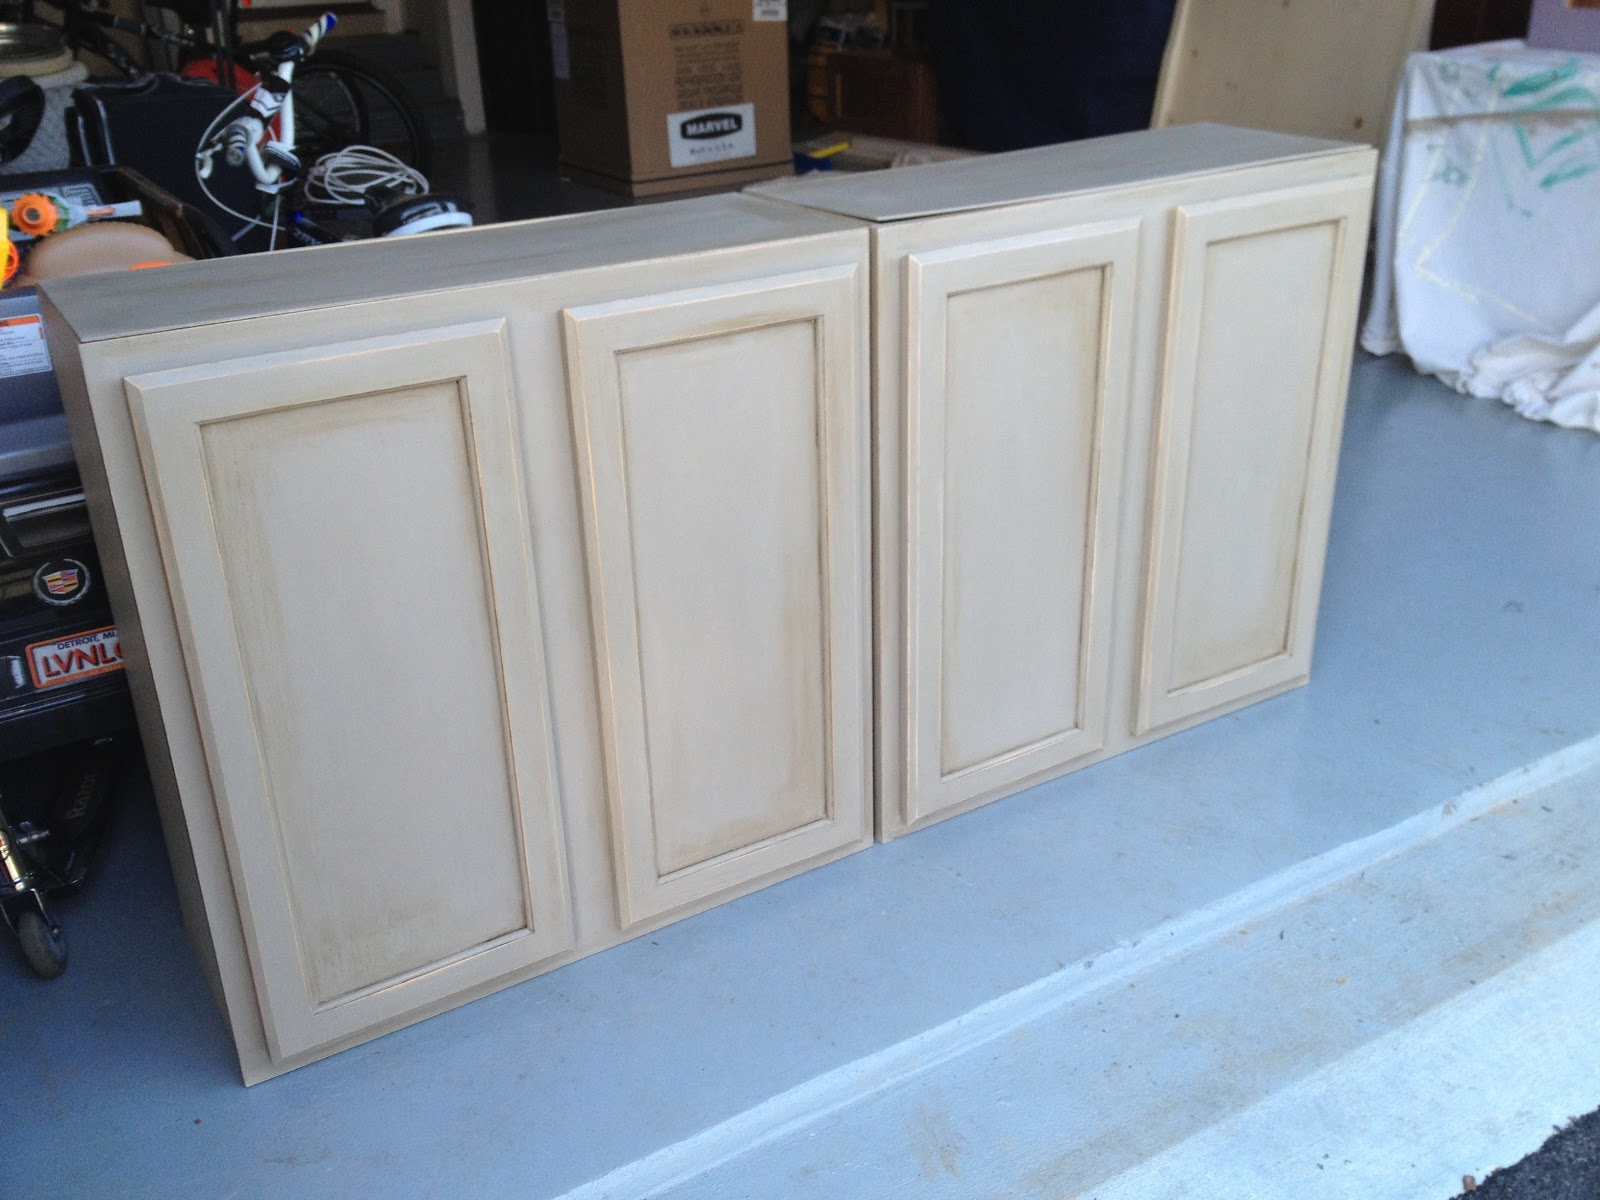 Kitchen Cabinets Unfinished Foam Mats My Twig And Twine Nest Gallery Of Furniture Makeovers